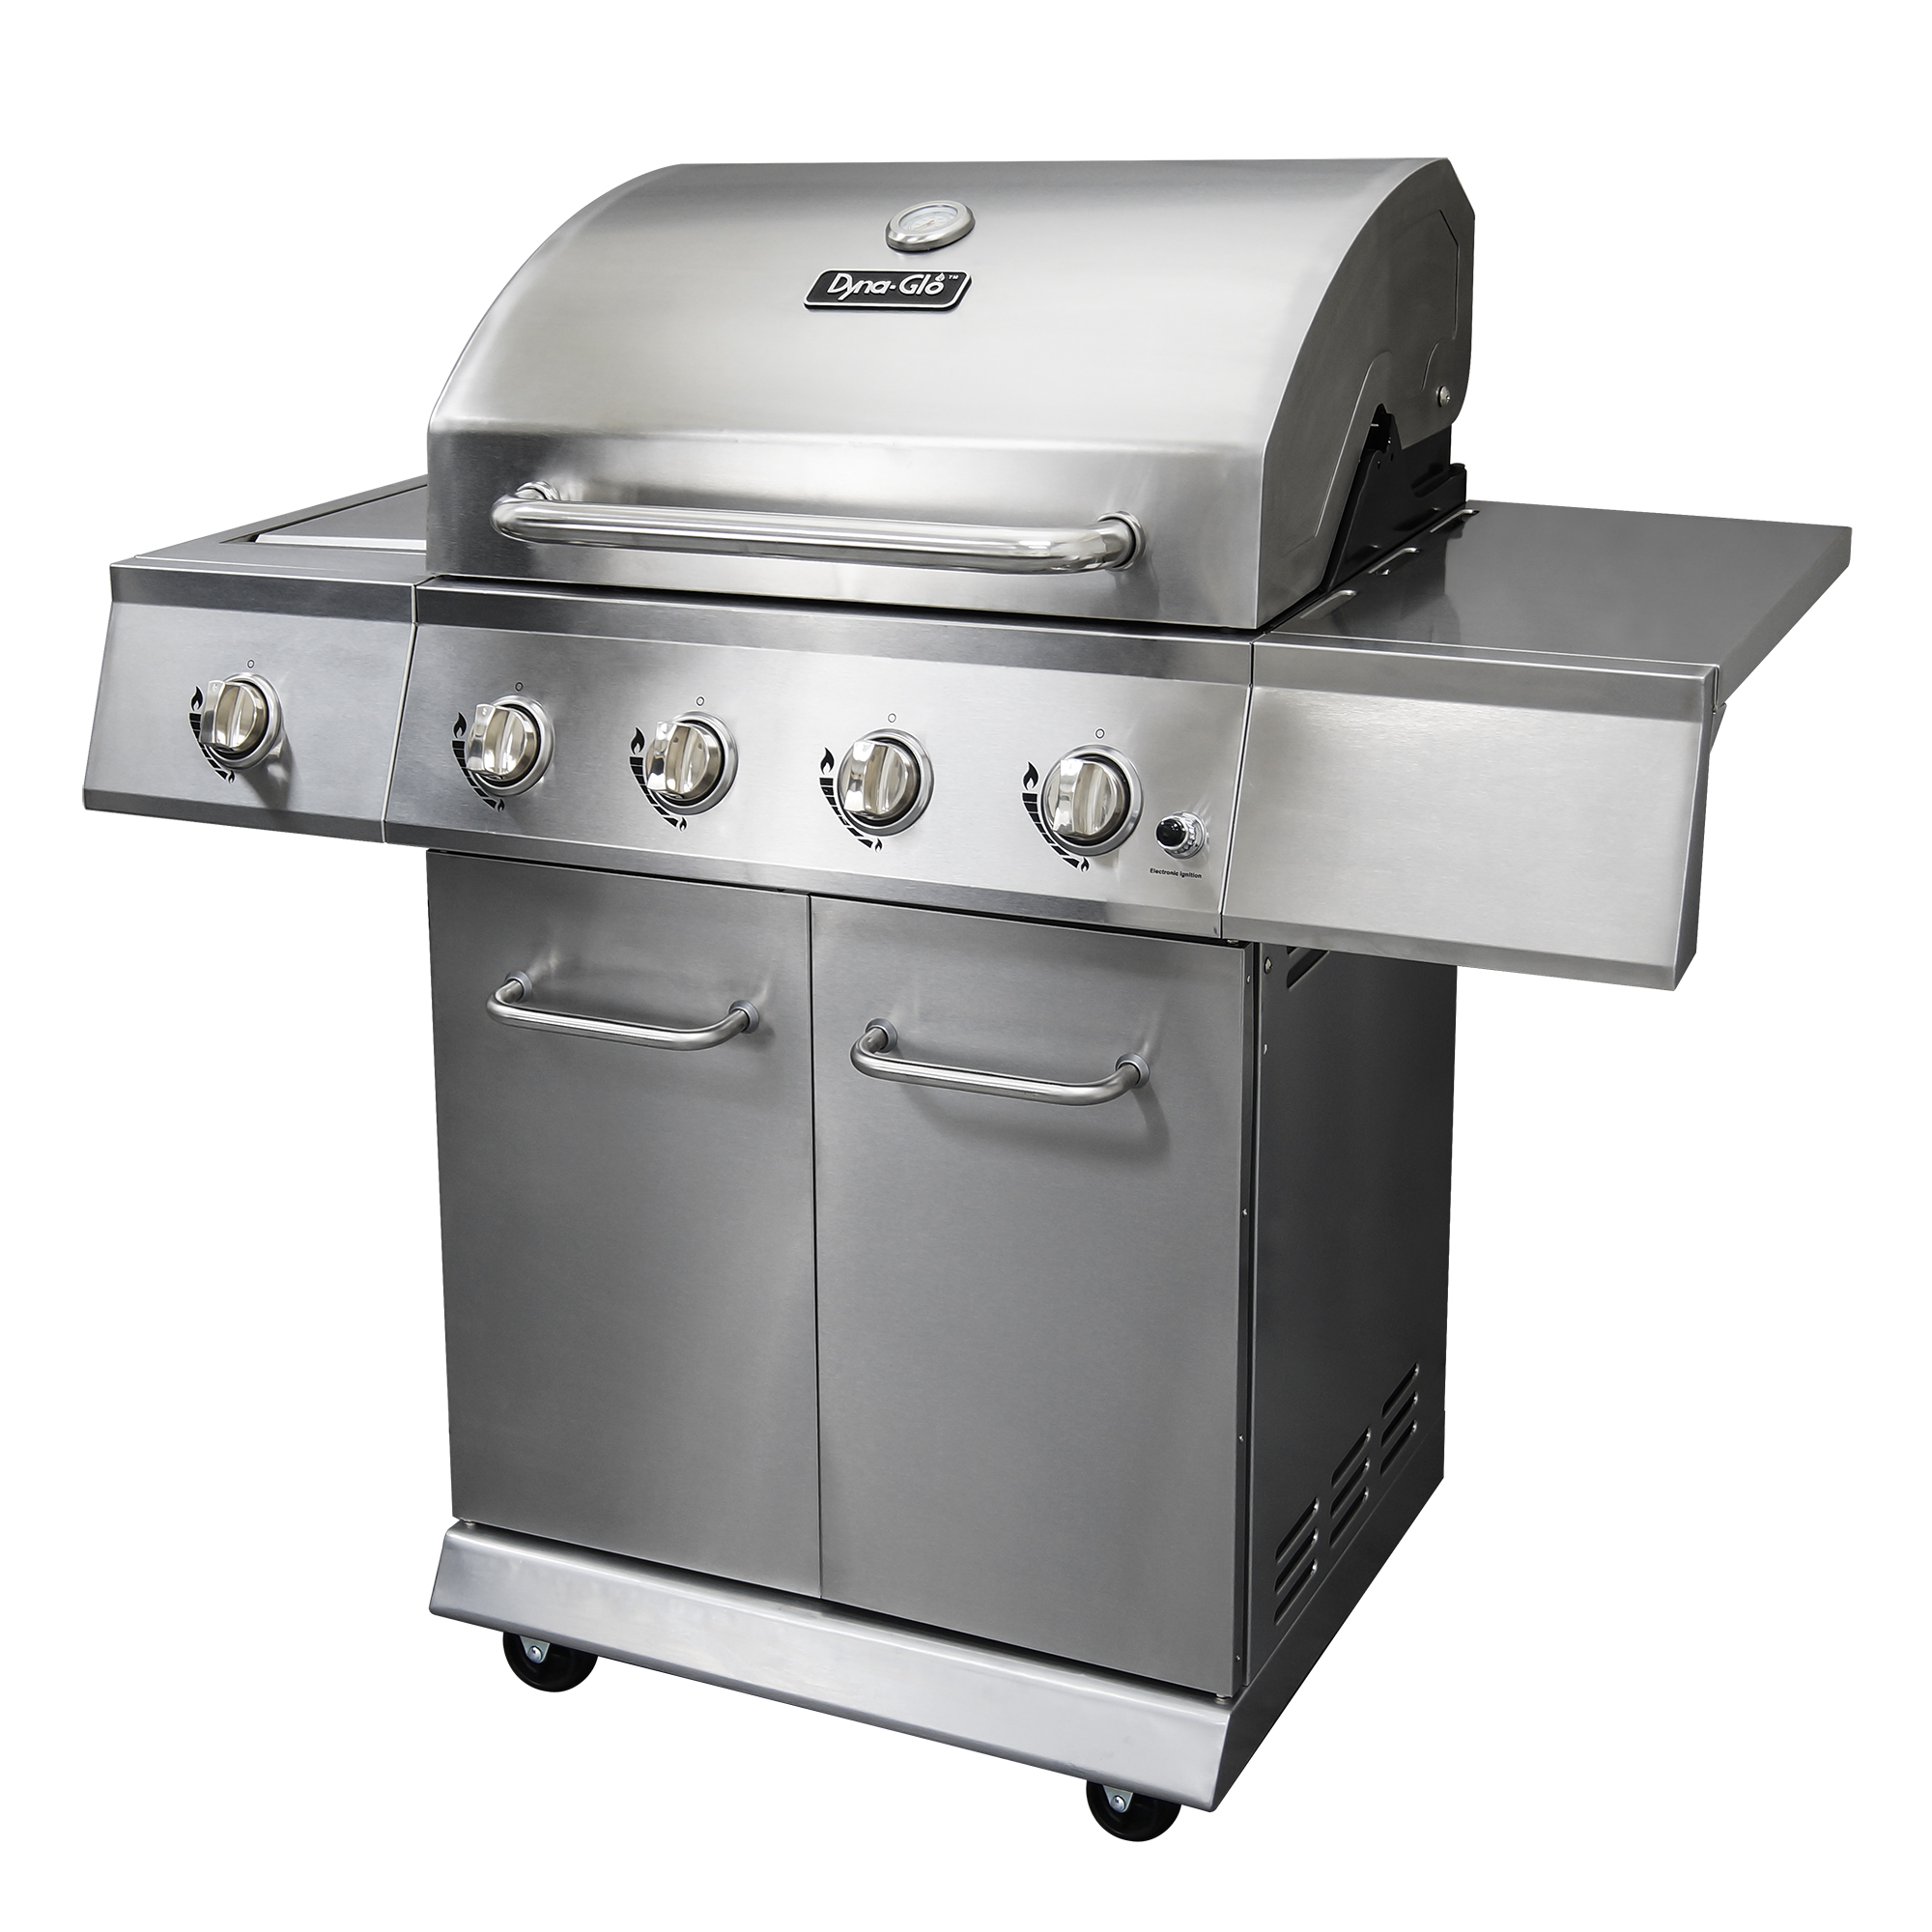 Dyna-Glo DGE486SSP-D 4 Burner Stainless Gas Grill